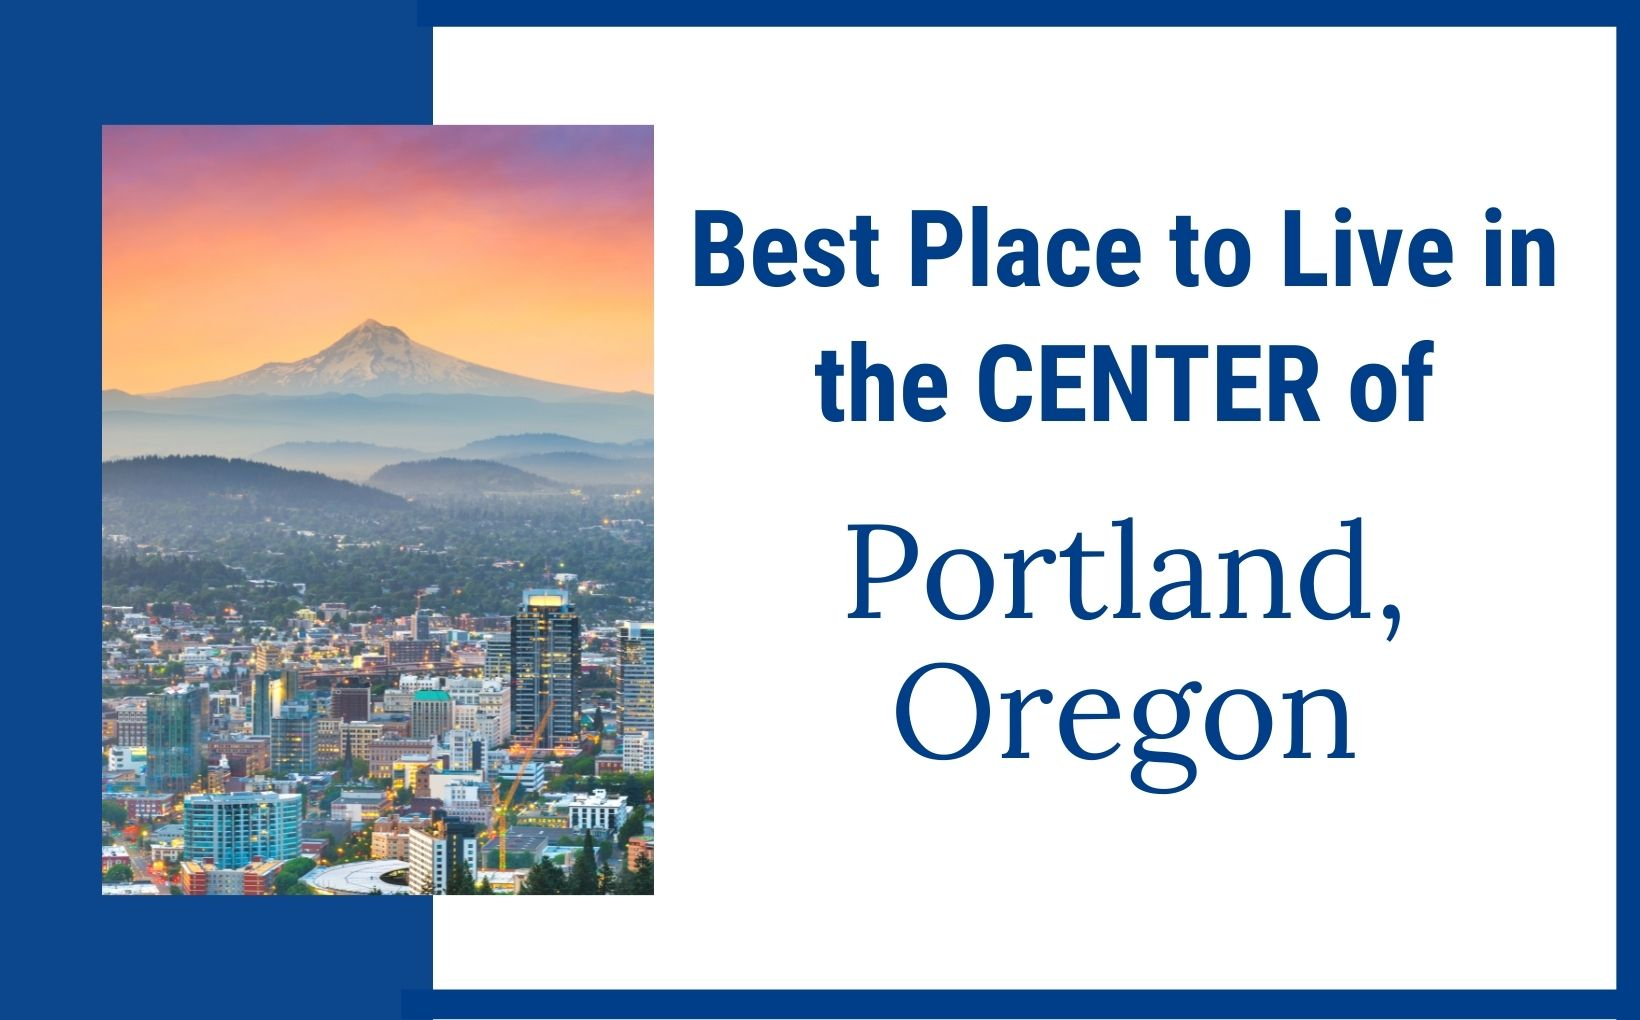 best place to live in the center of Portland Oregon feature image